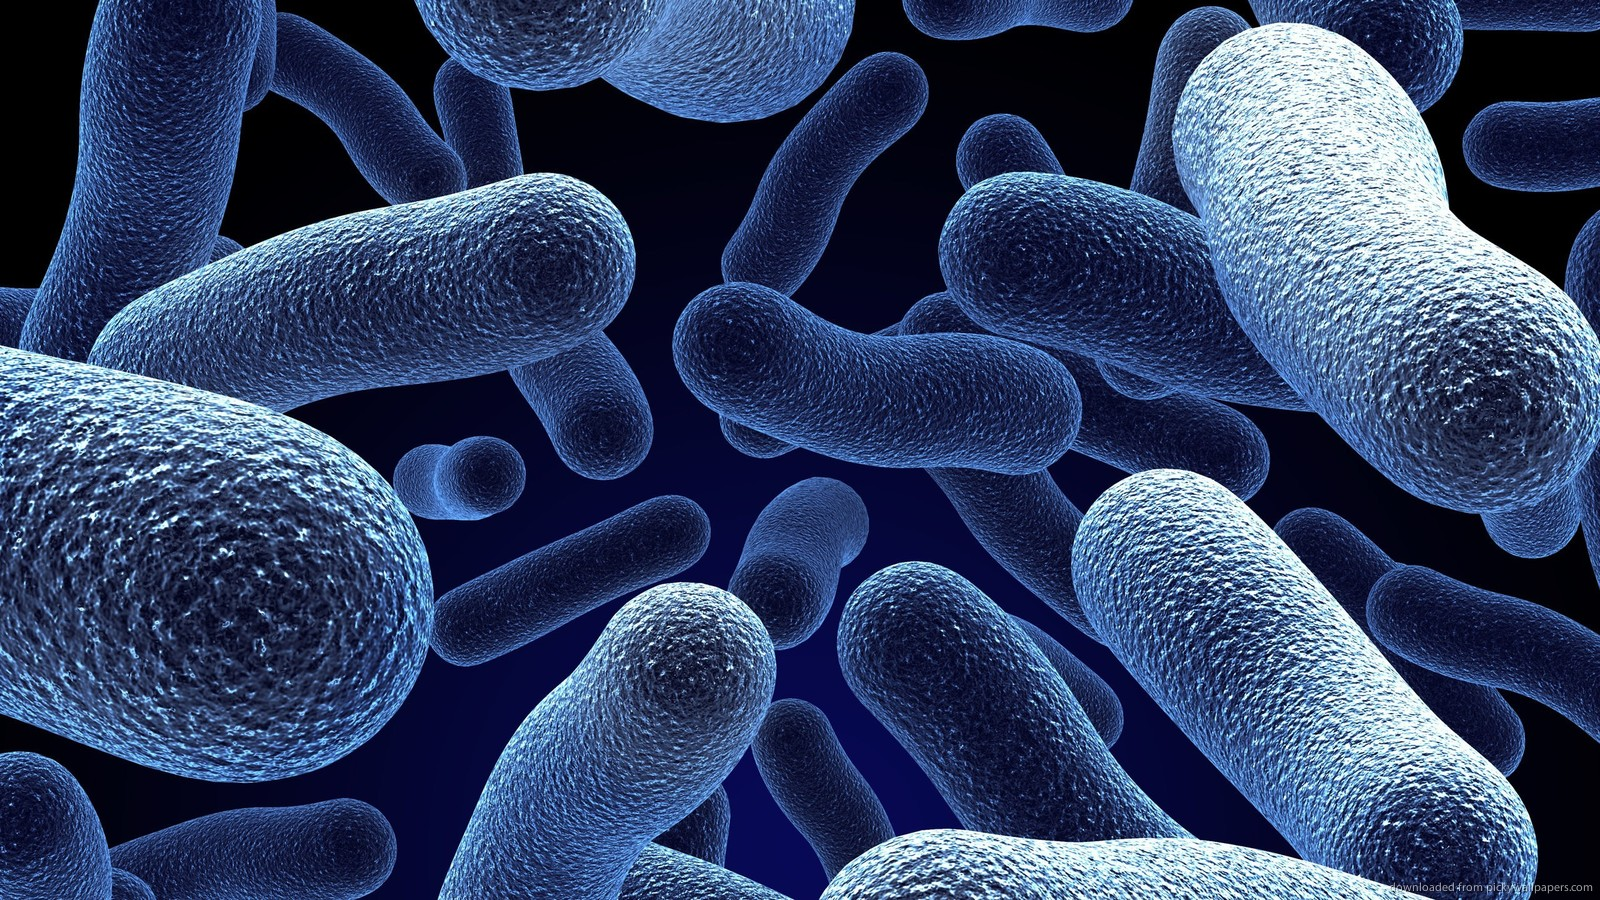 Gut Health Impacts Sleep, Calling for Pre- and Probiotics